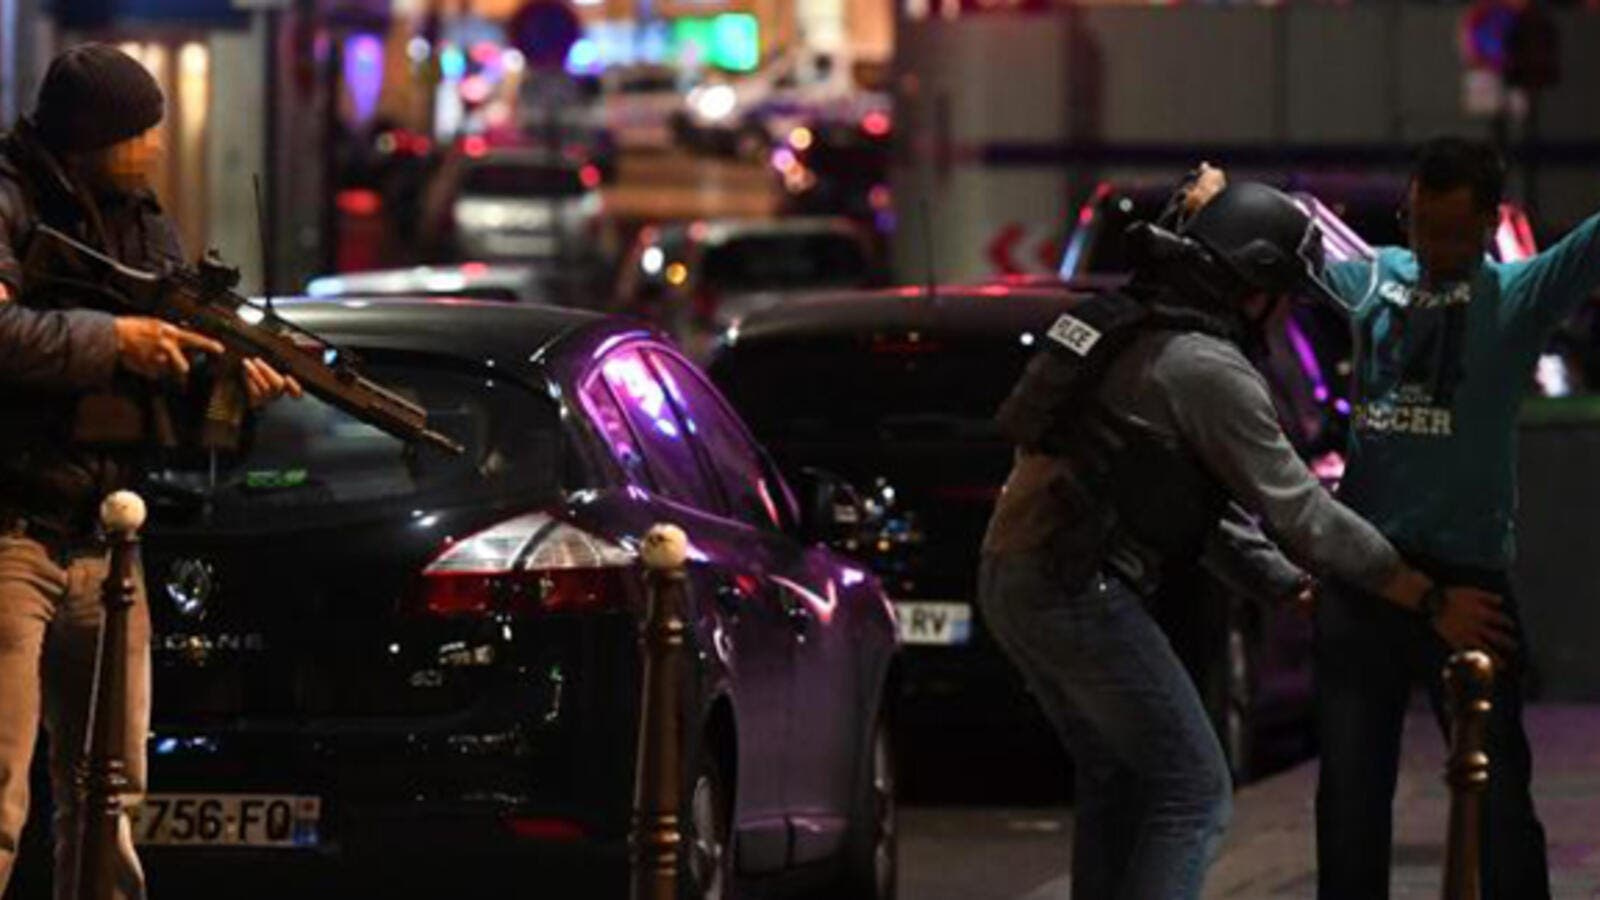 Police officers frisk a man on the Champs Elysees in Paris after the deadly shooting. (AFP)